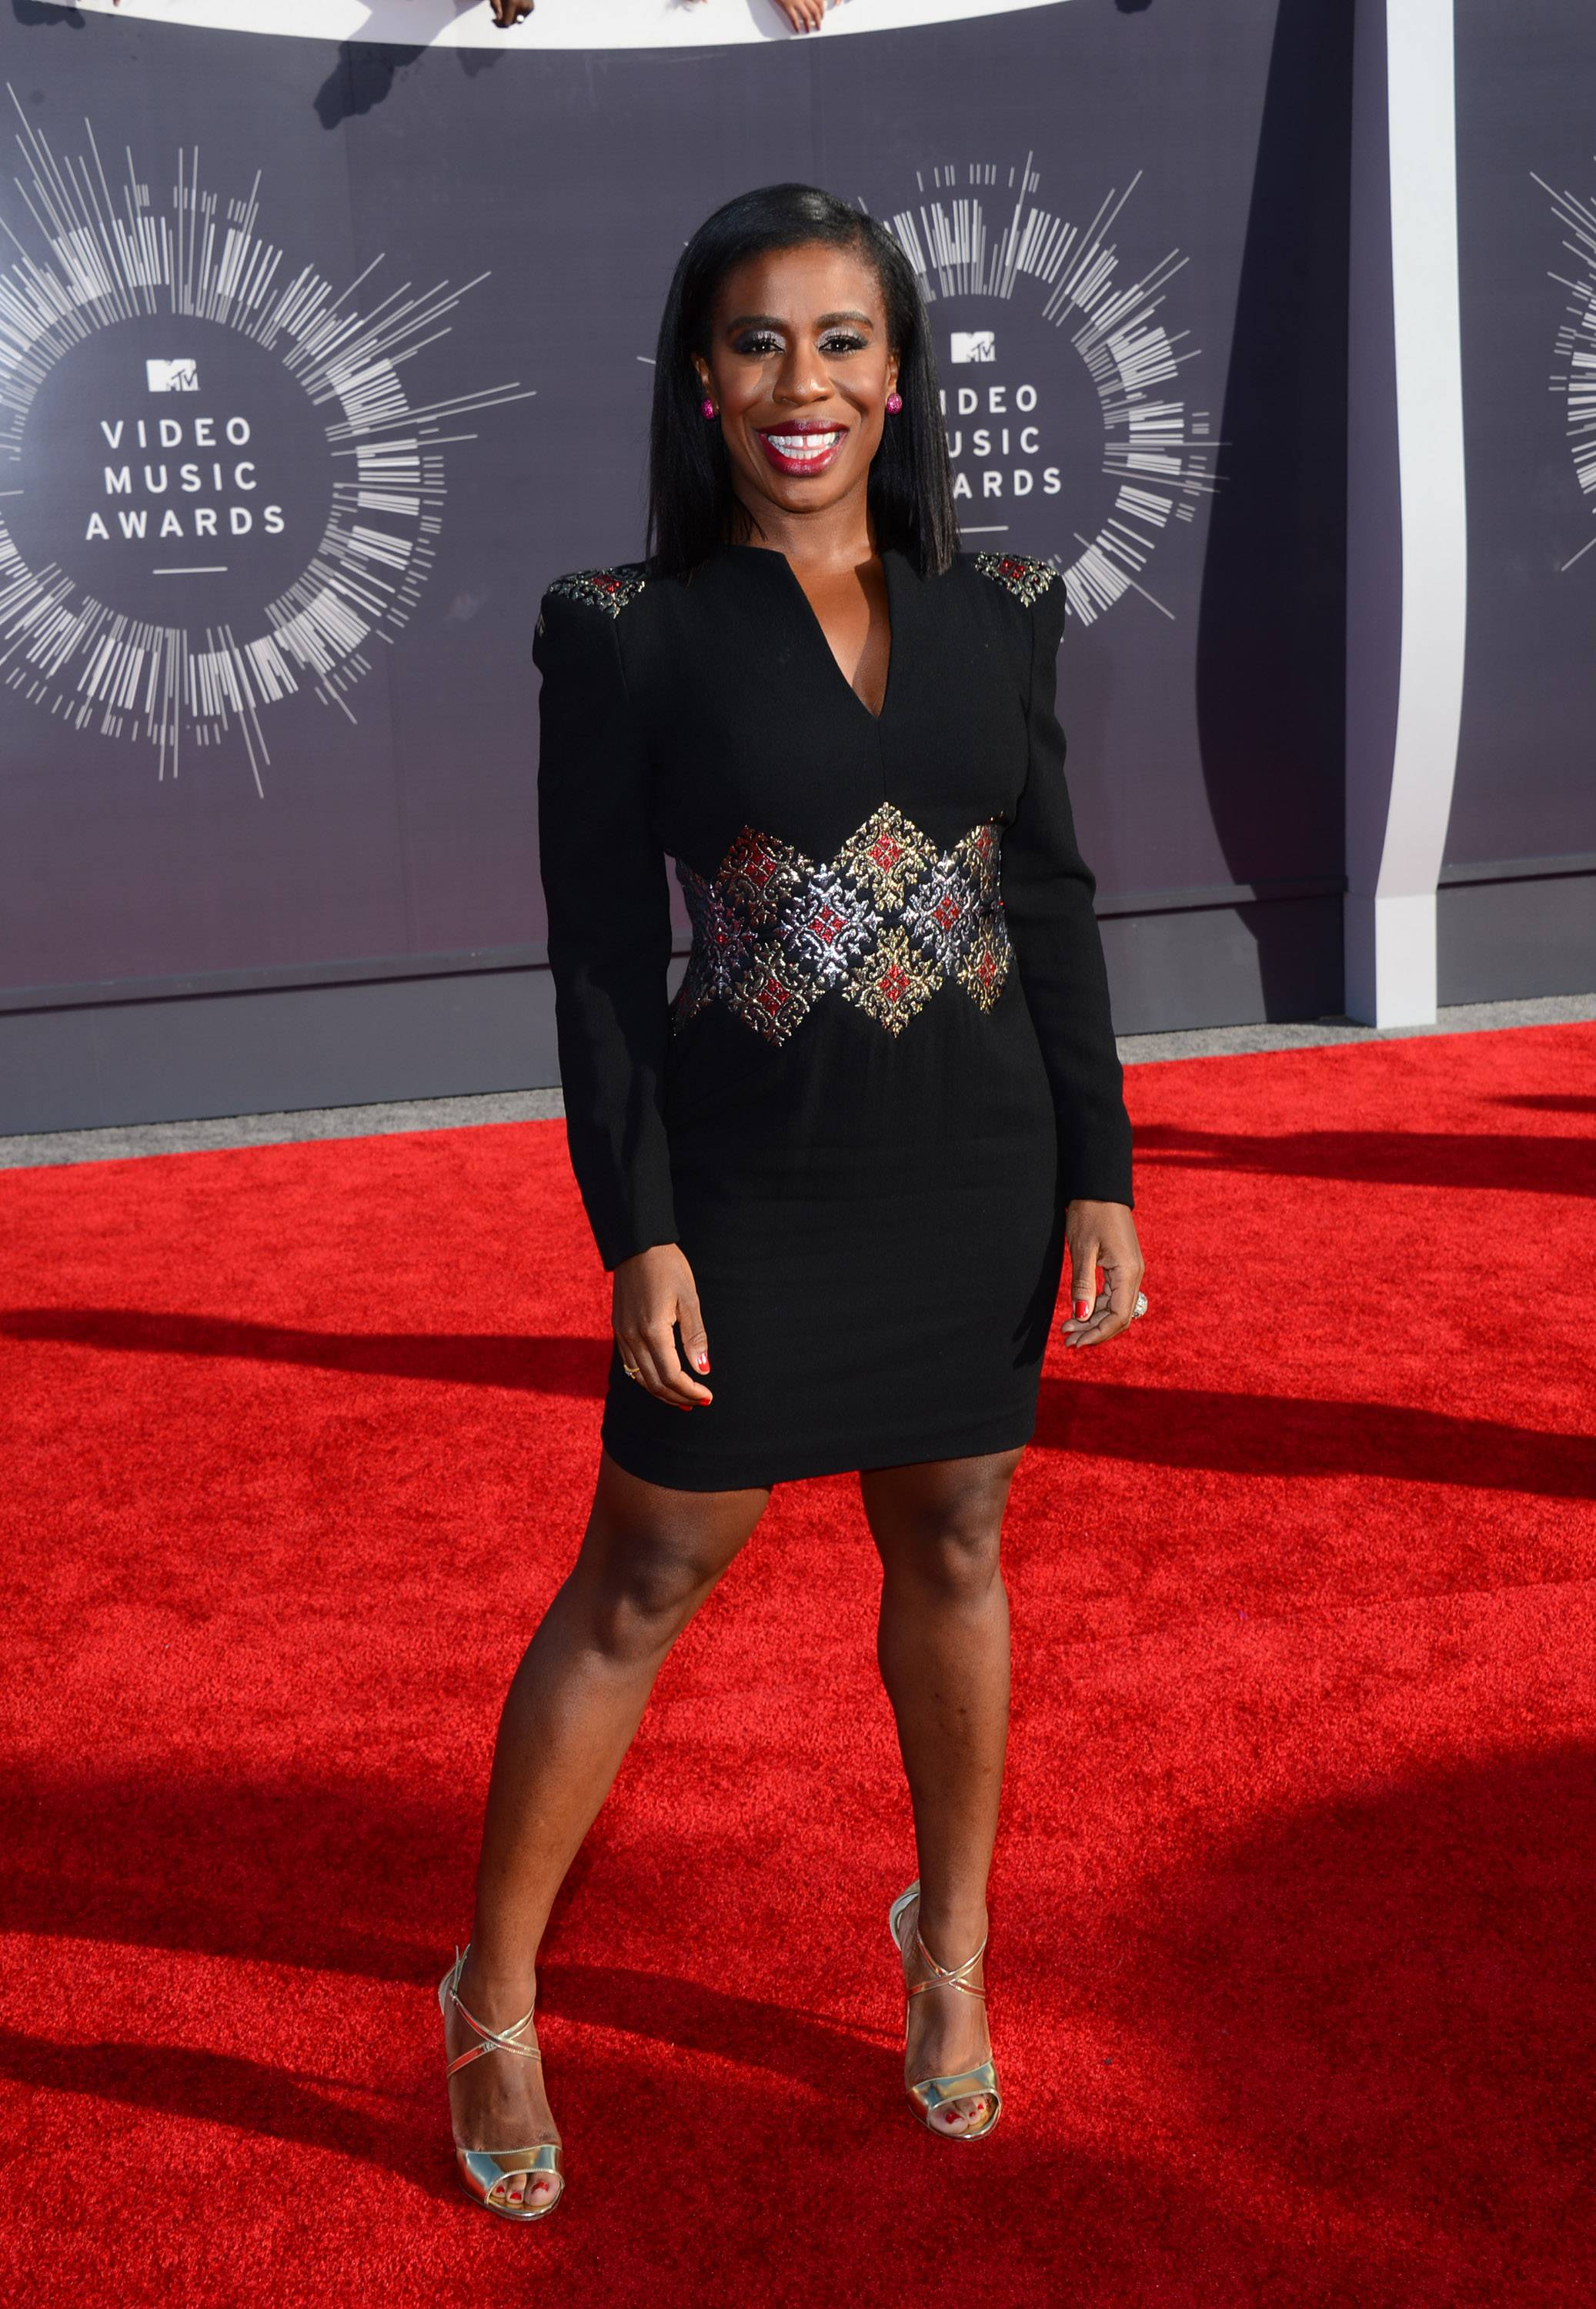 """Orange Is the New Black"" star Uzo Aduba arrives at the MTV Video Music Awards. Aduba would present with her castmates Taylor Schilling and Laverne Cox."